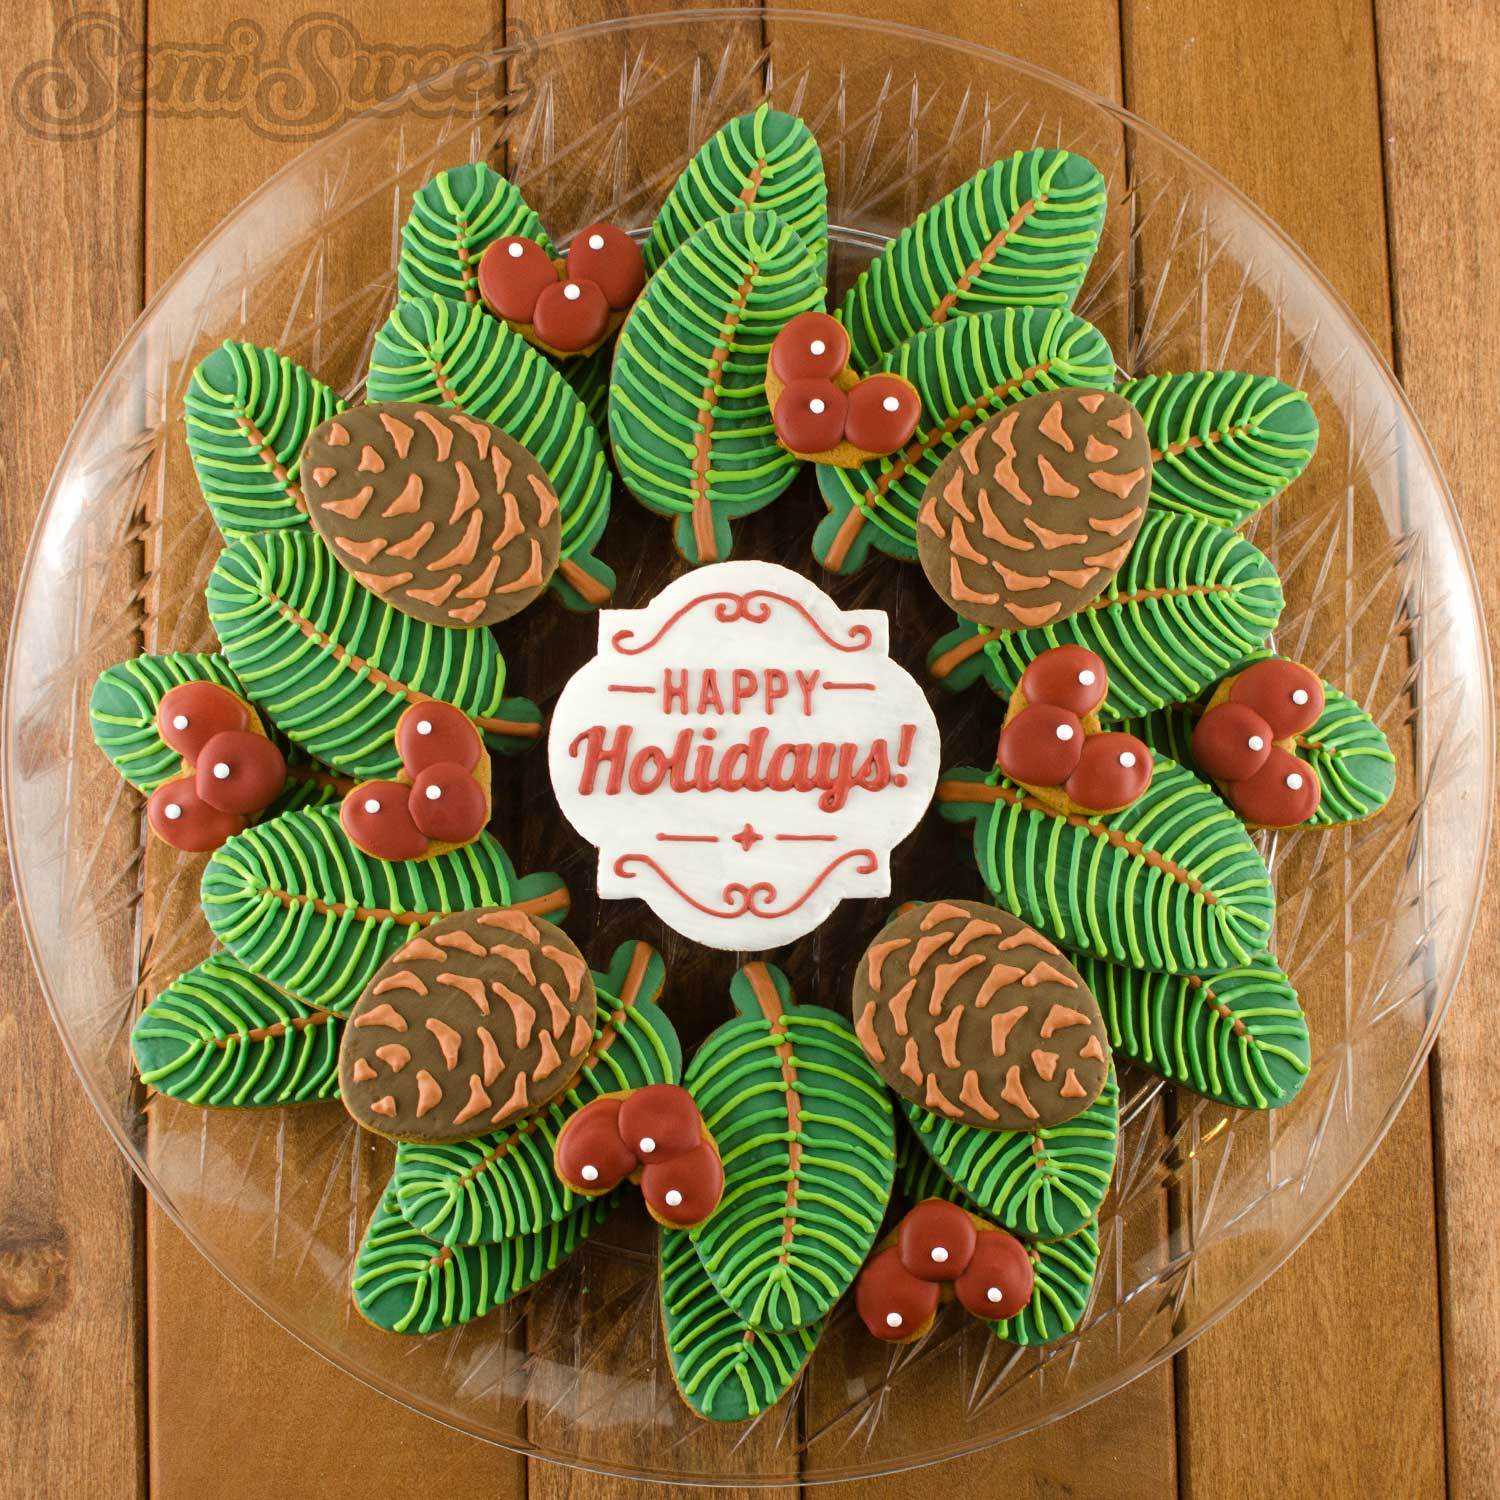 How To Make A Pine Wreath Cookie Platter